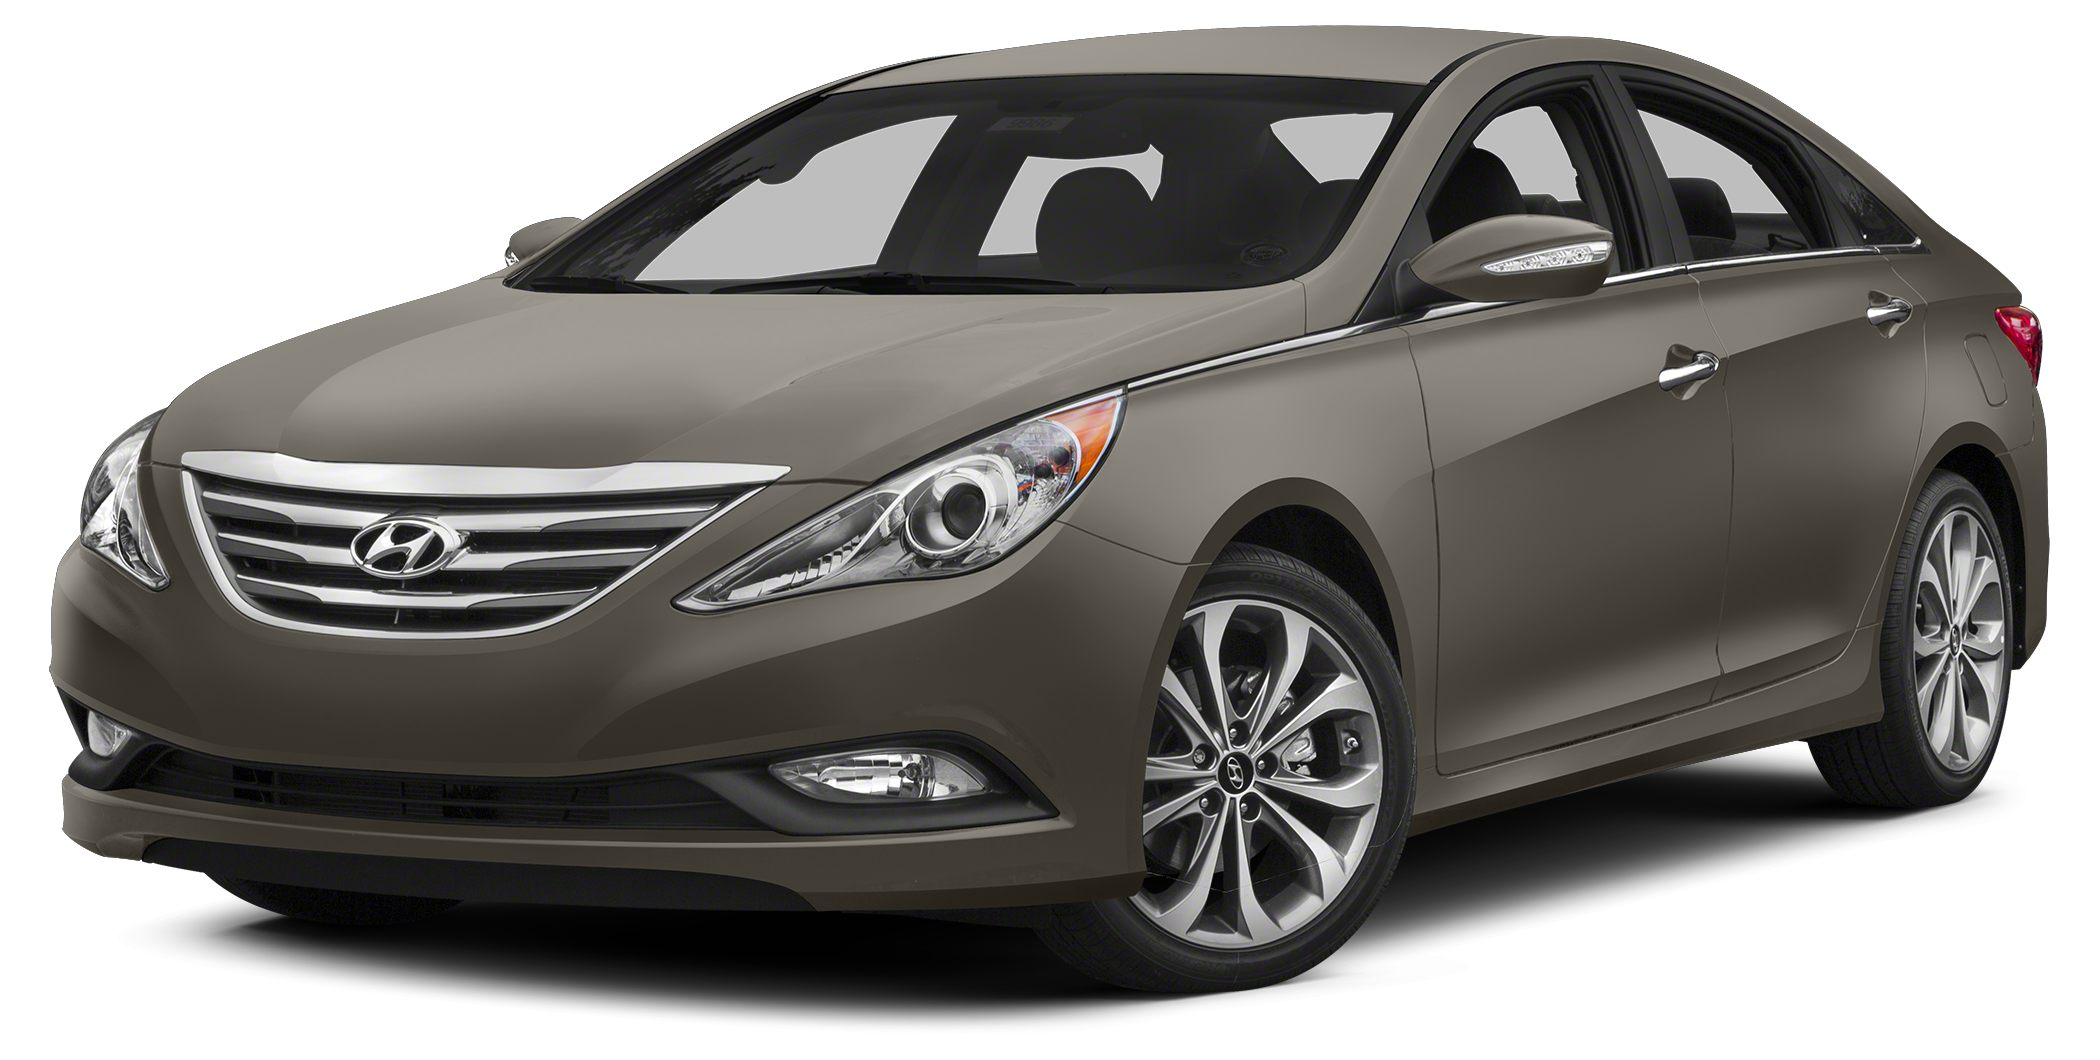 2014 Hyundai Sonata Limited HYUNDAI CERTIFIED -TECH PKG-NAVIGATION-PANOROOF - FULLY SERVICED One